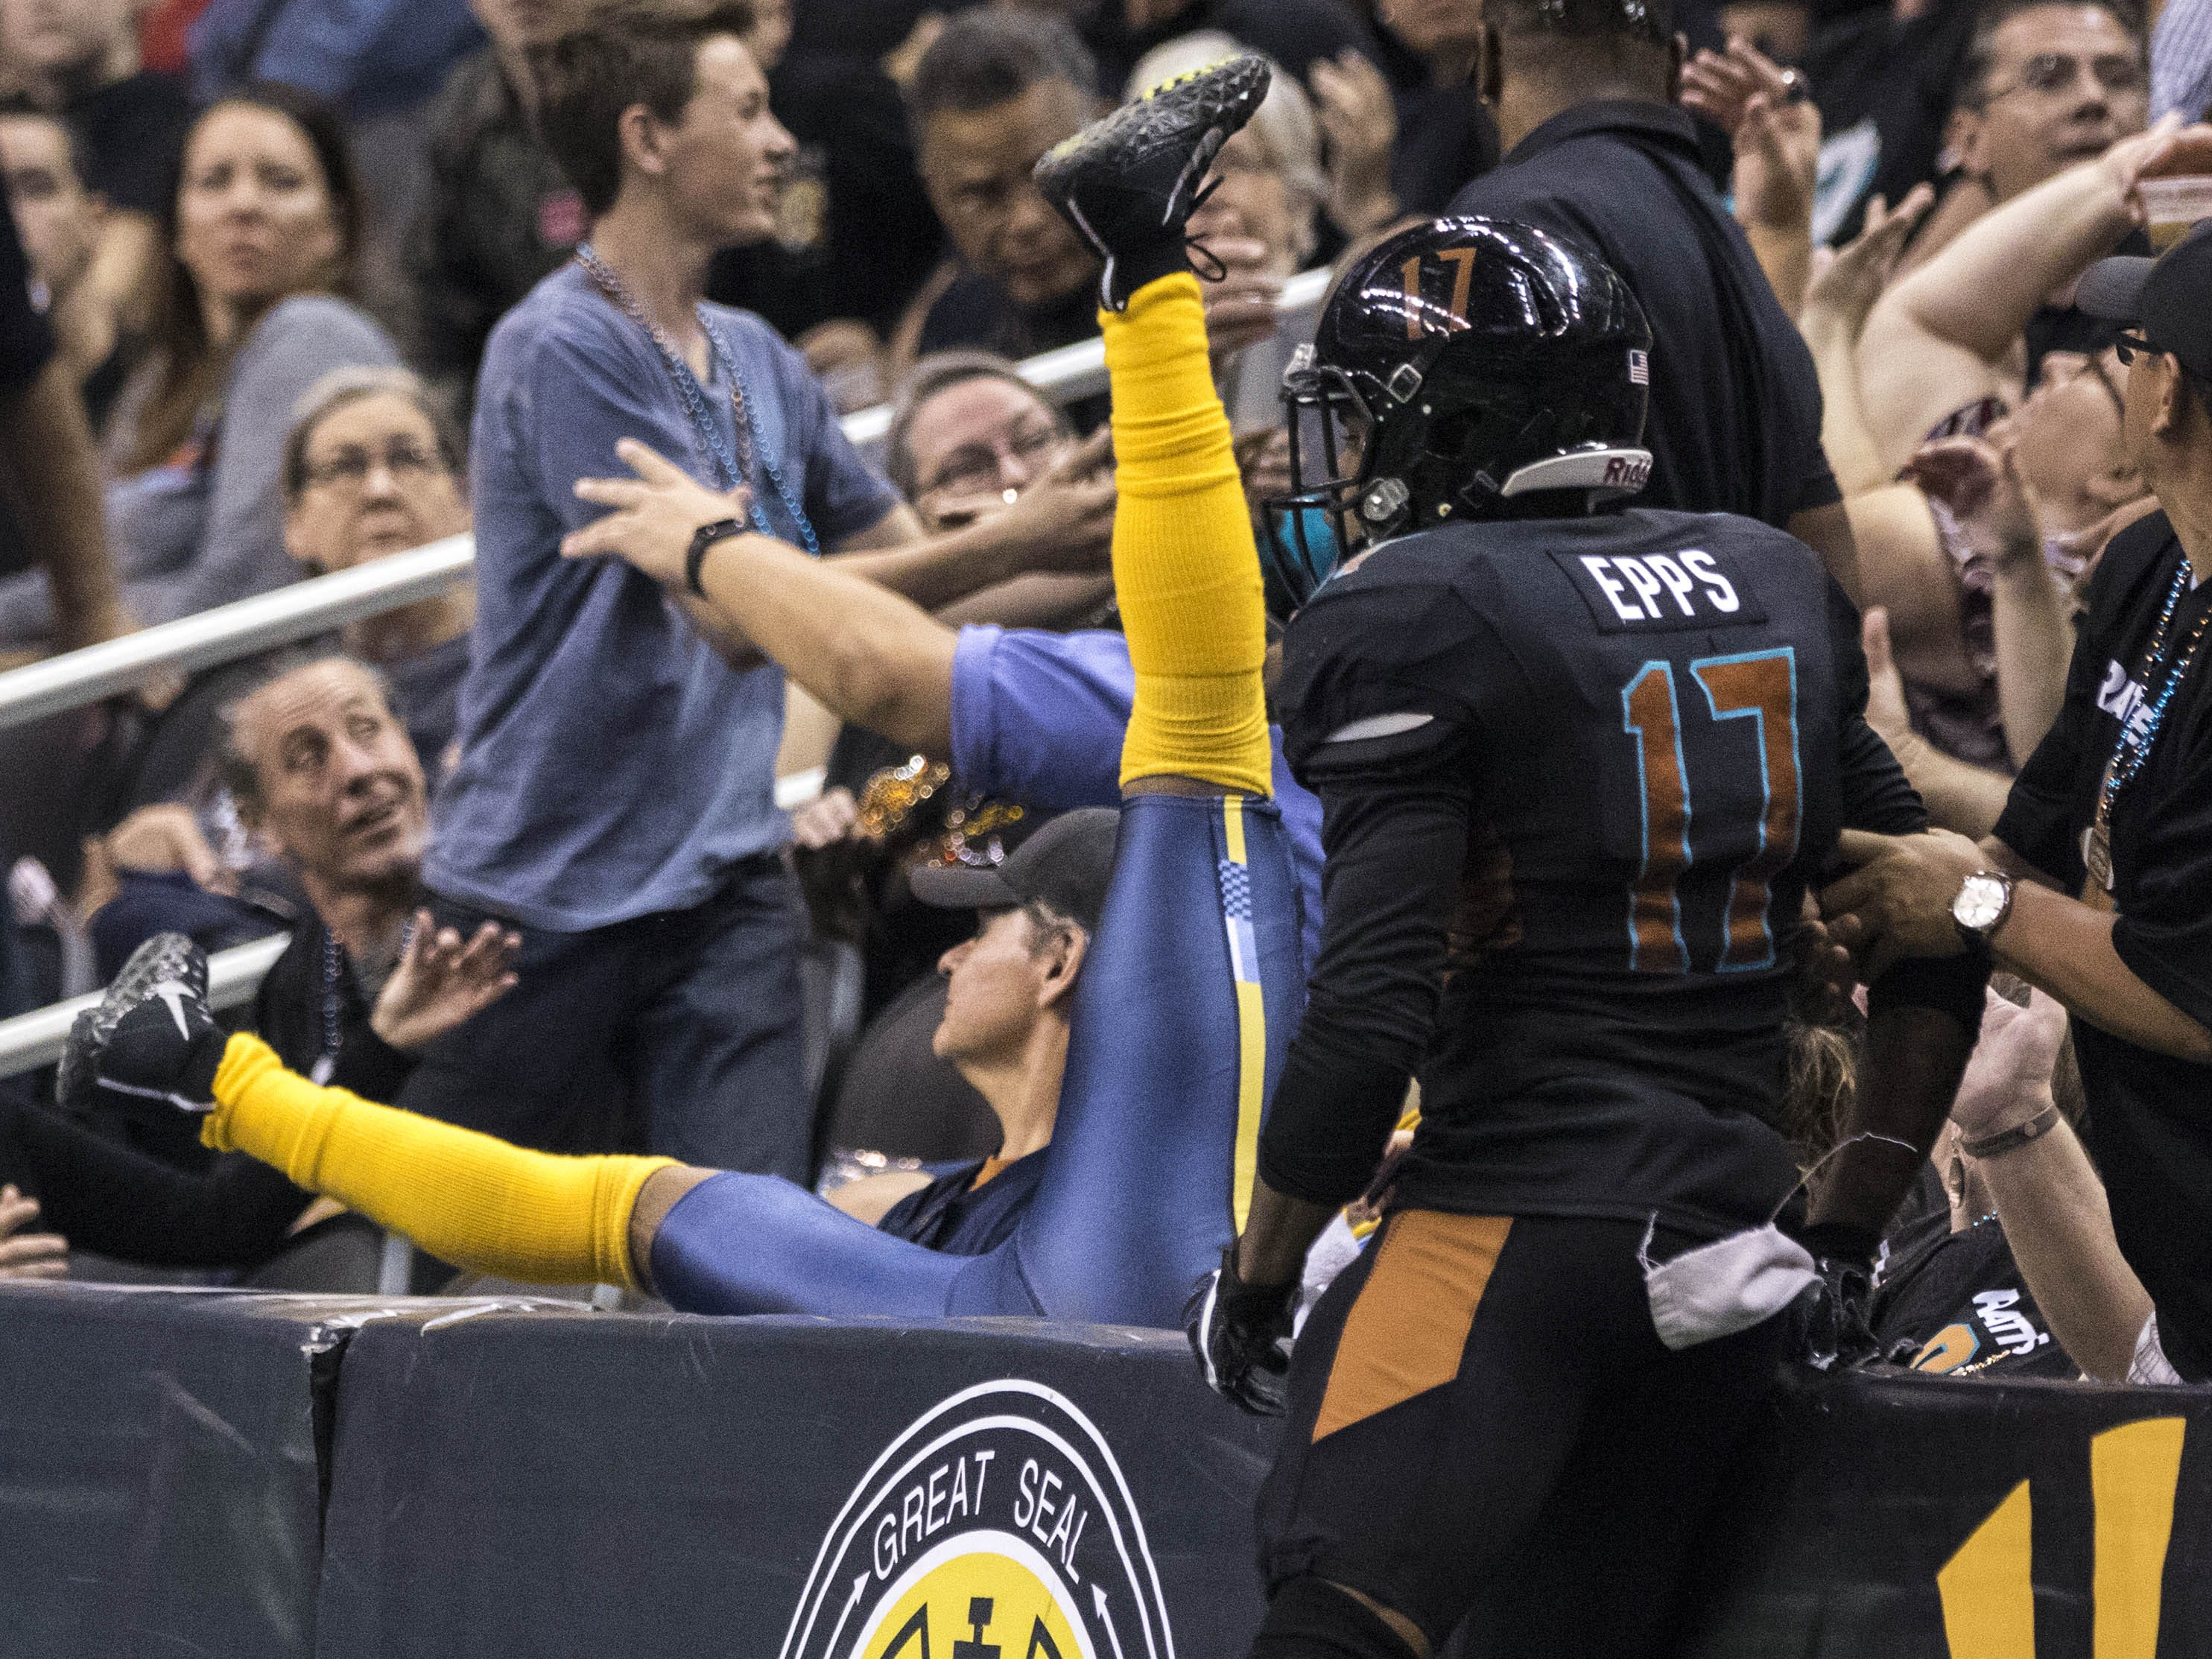 Arizona Rattlers' Dezmon Epps (17) watches as Cedar Rapids River Kings' Jordan Smith (17) goes sprawling into the fans during the second half of their game at Talking Stick Resort Arena in Phoenix, Sunday, March 3, 2019.